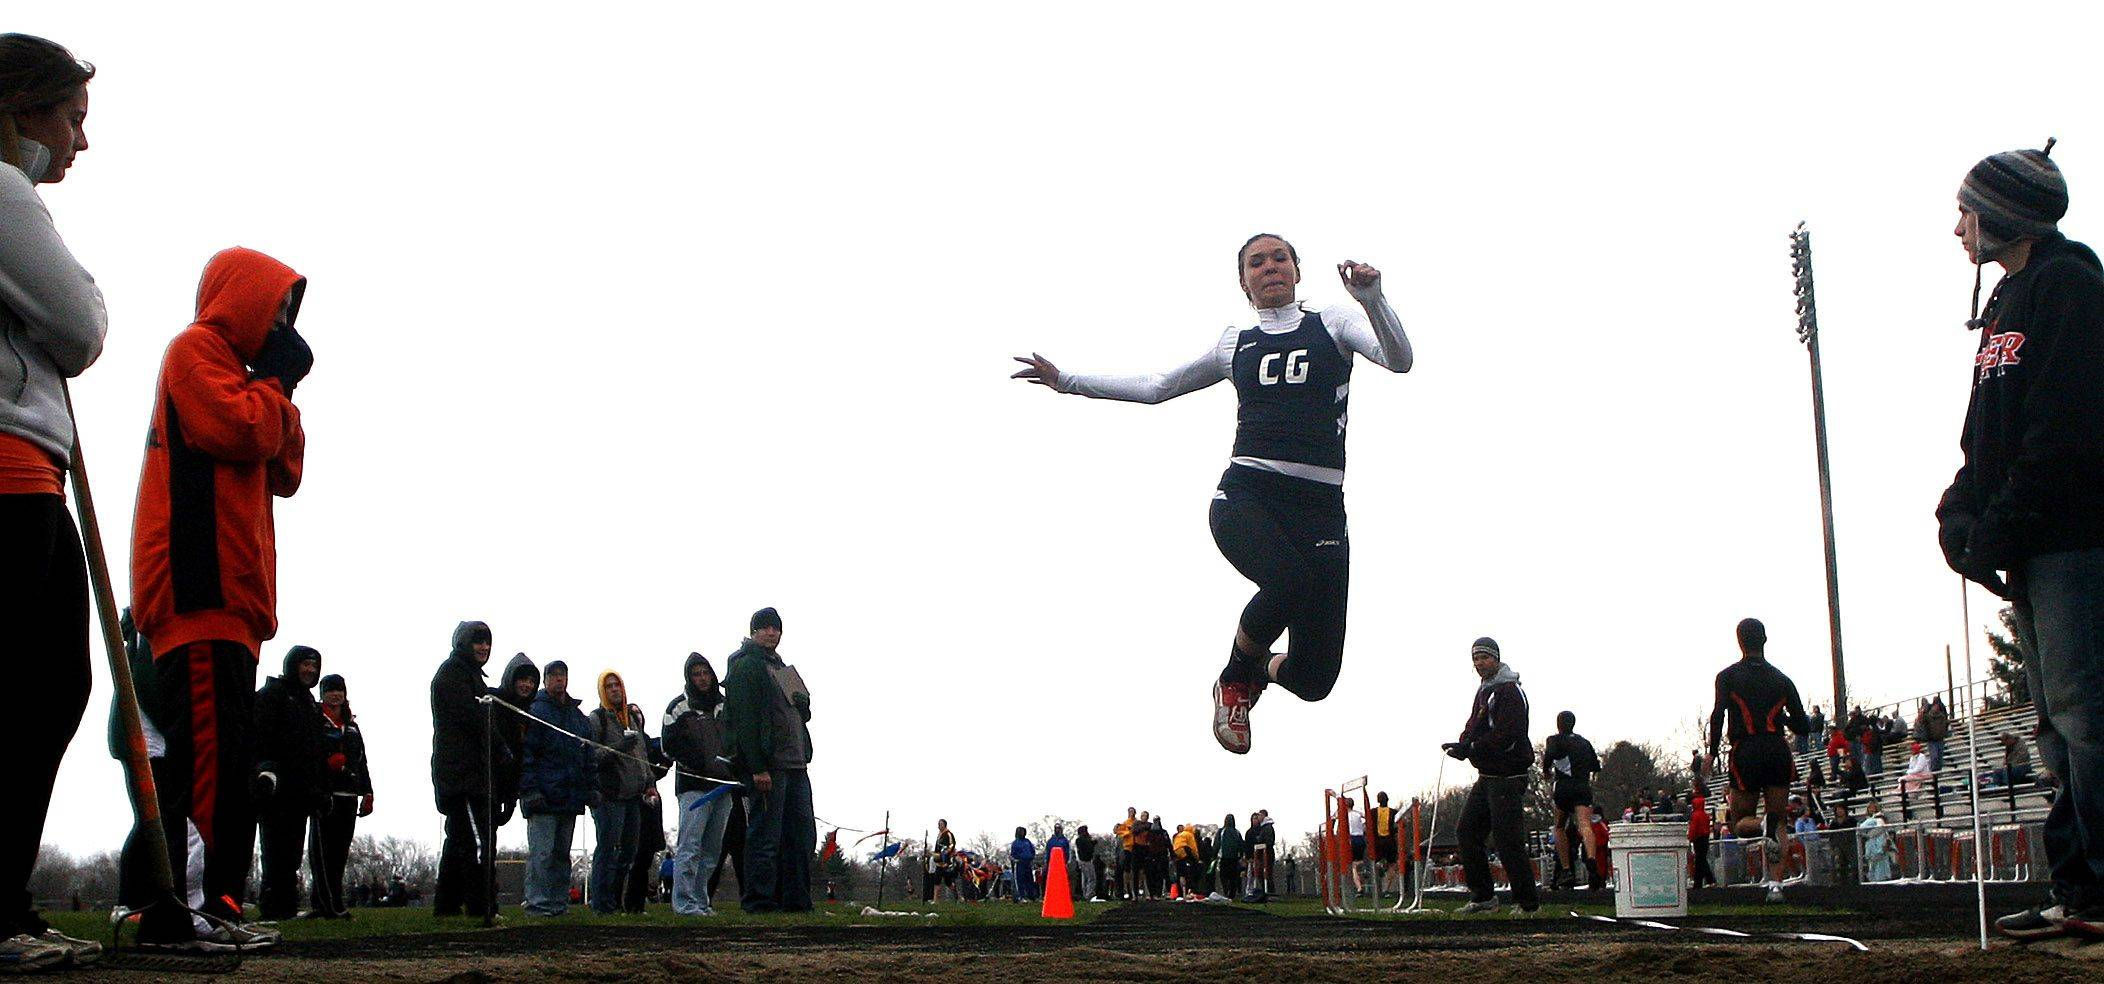 Cary-Grove's Joss Nicholson competes in the triple jump finals during the McHenry County Track and Field Meet at Metcalf Field on the campus of Crystal Lake Central on Wednesday evening.